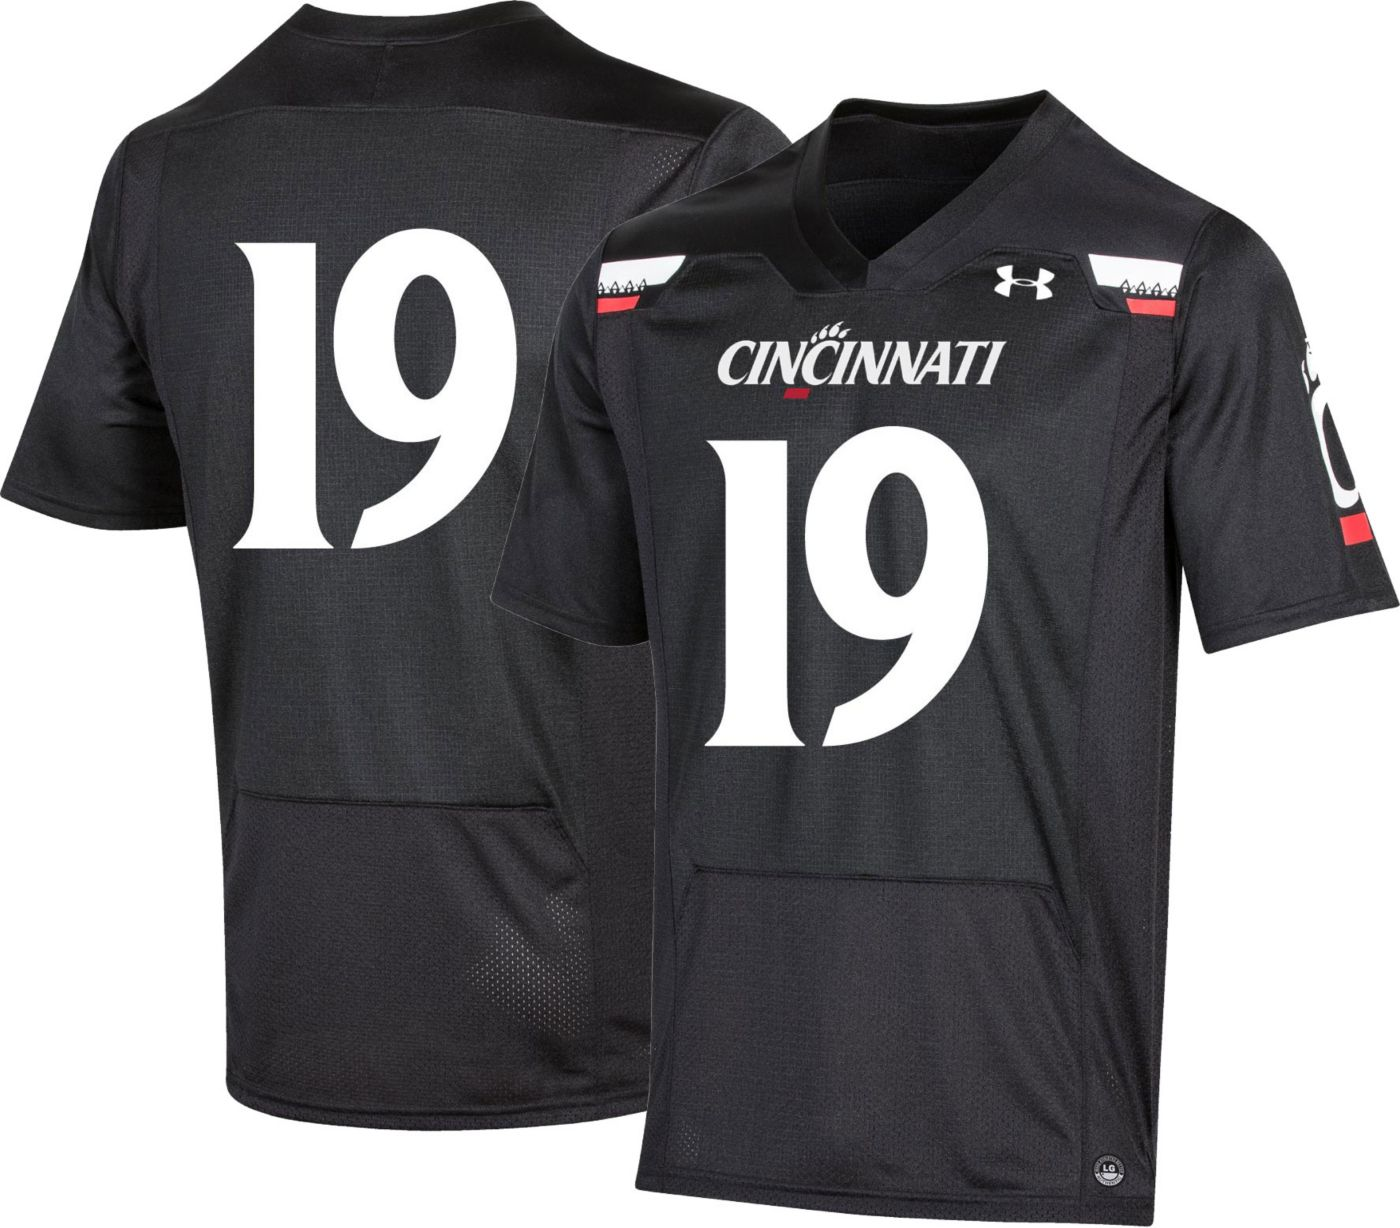 Under Armour Men's Cincinnati Bearcats #19 Replica Football Black Jersey